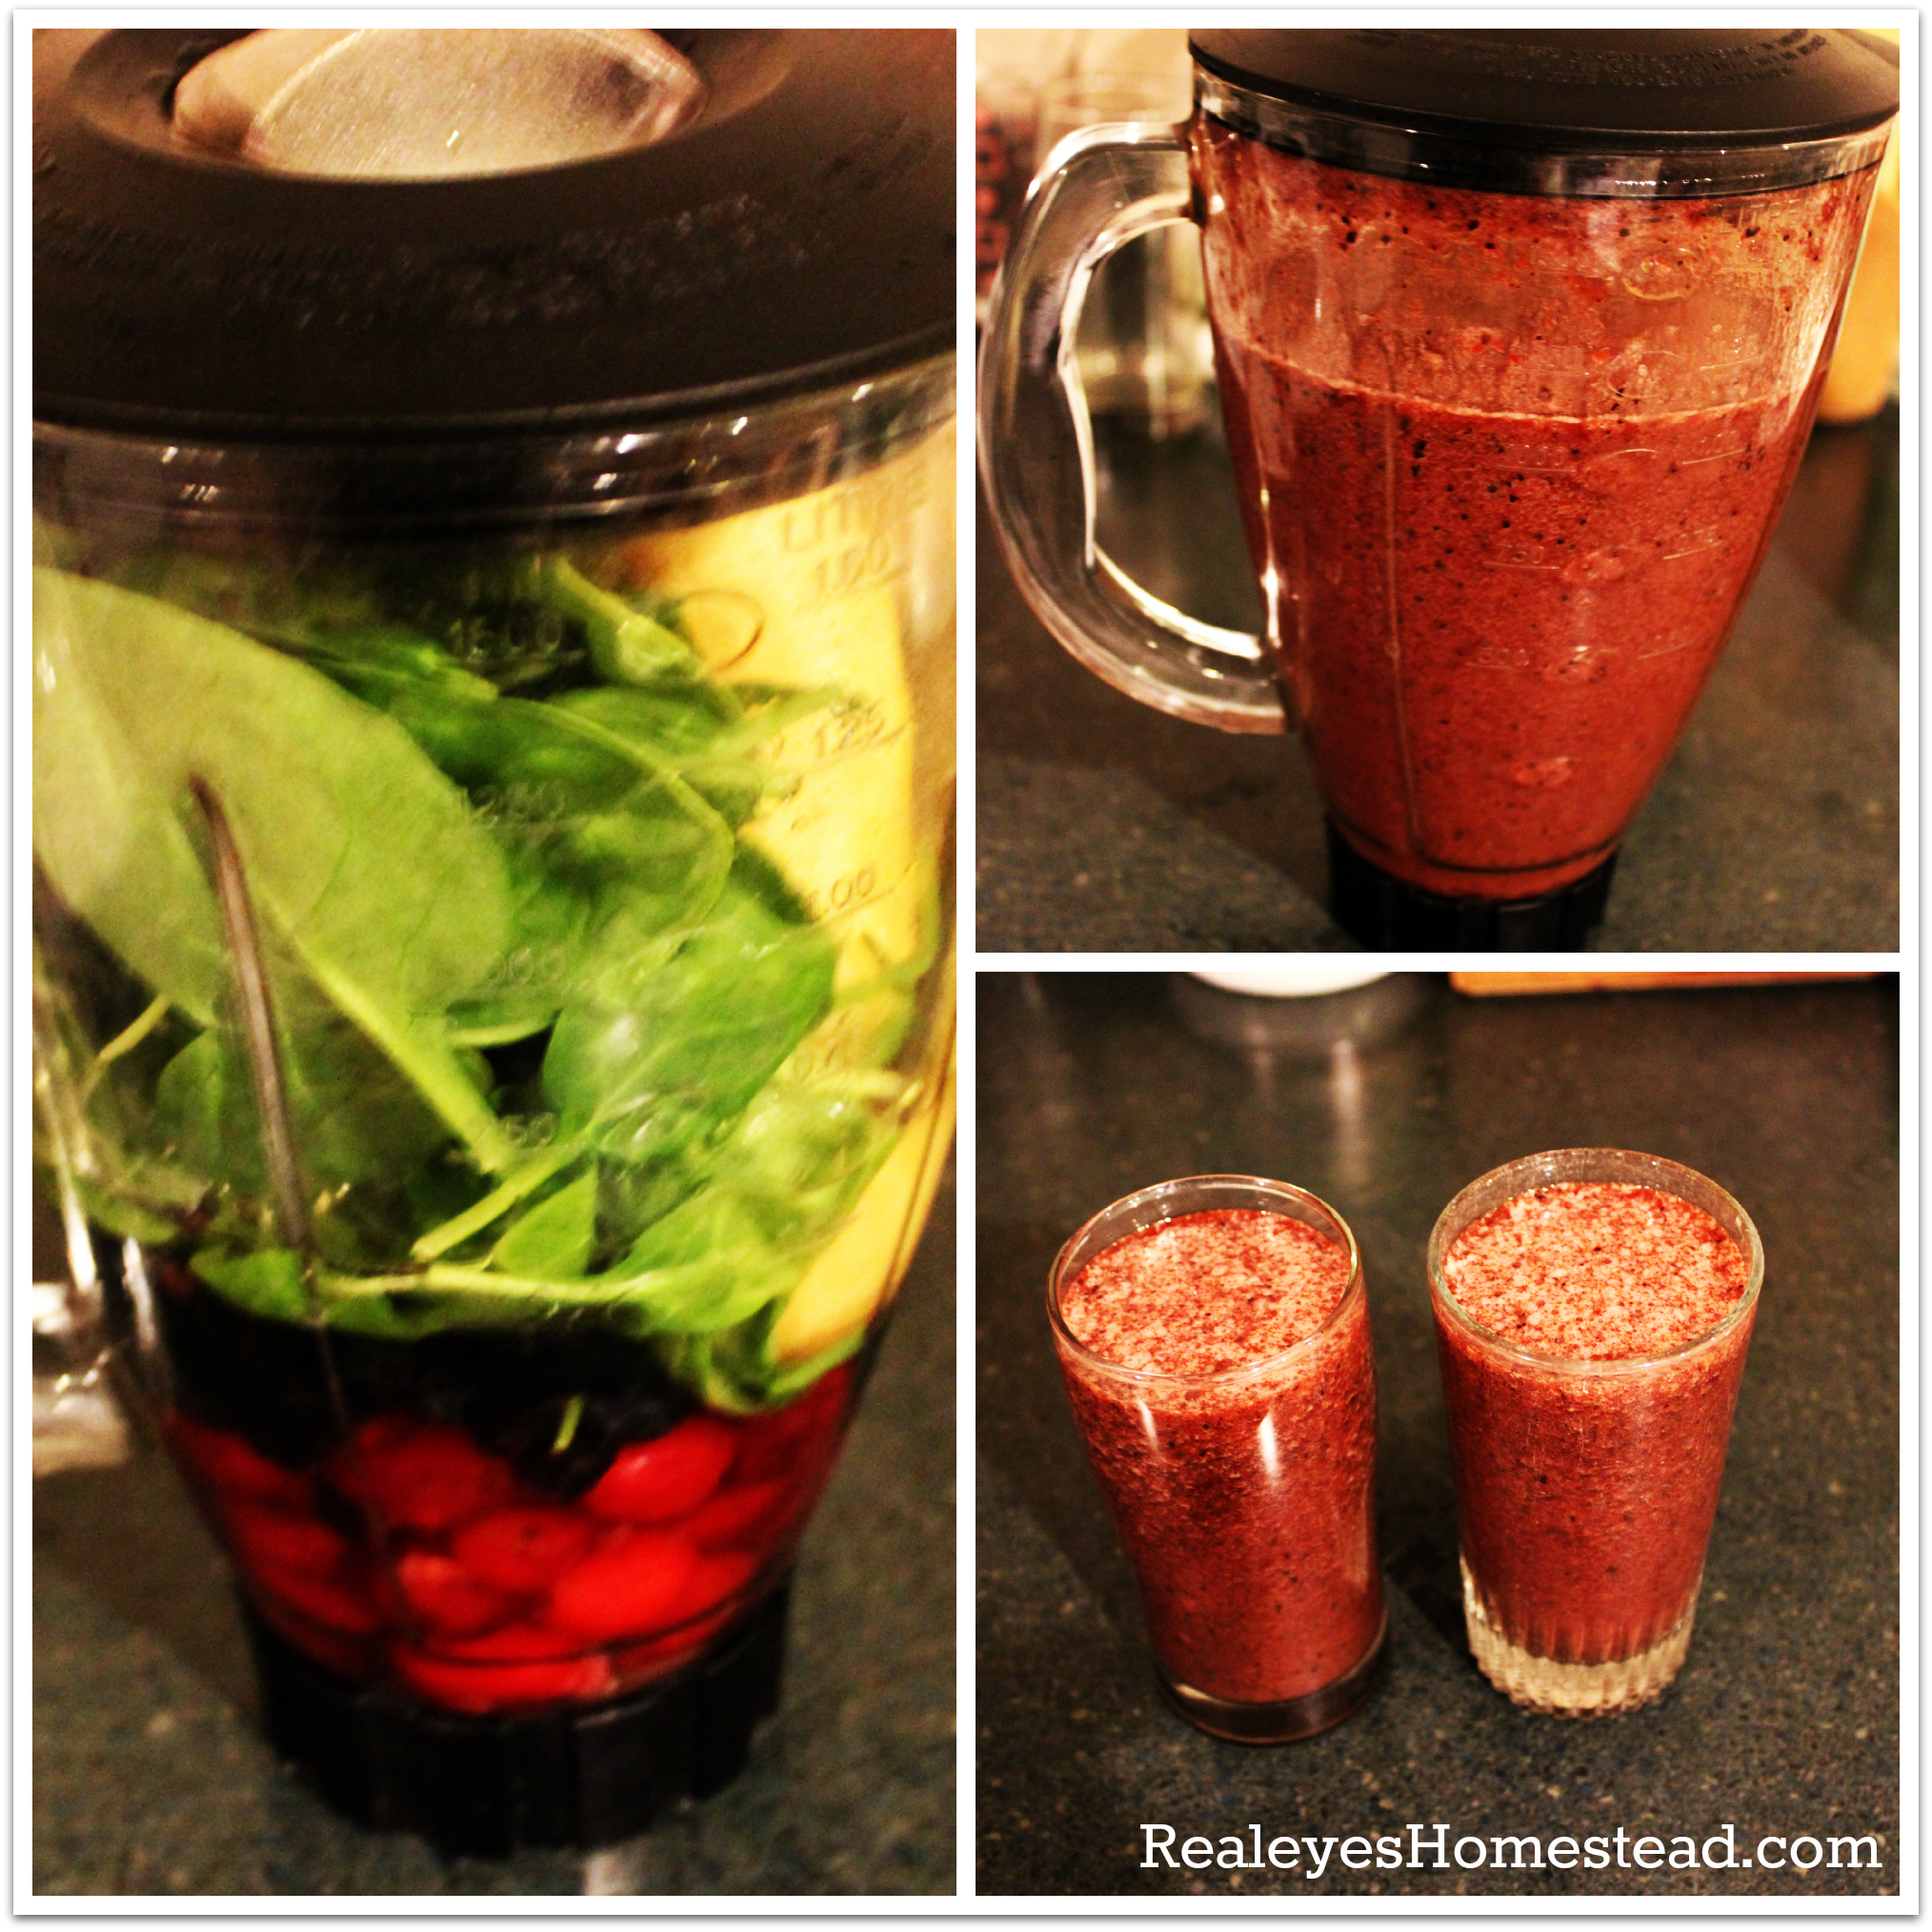 Cherry, Blueberry, Spinach, & Banana Smoothie